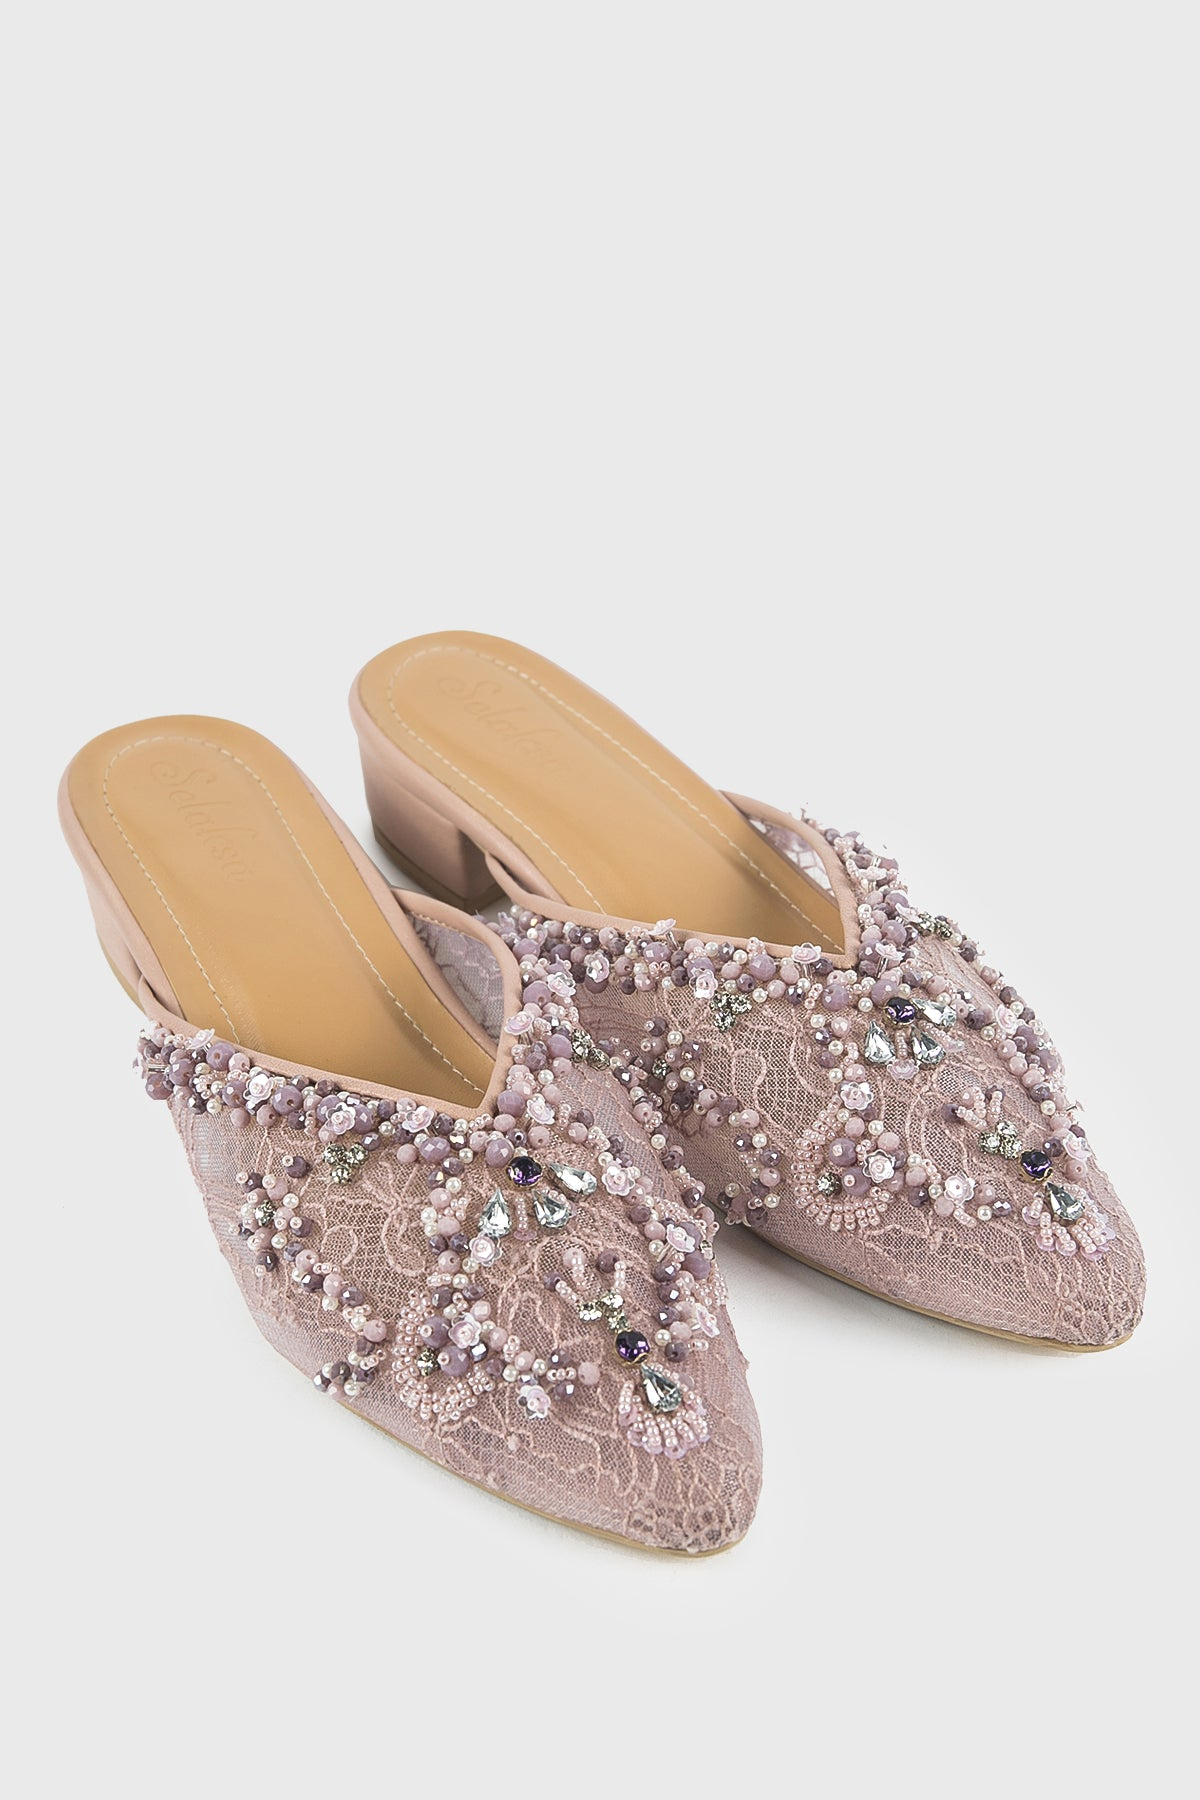 Selaksa Lily Shoes in Purple